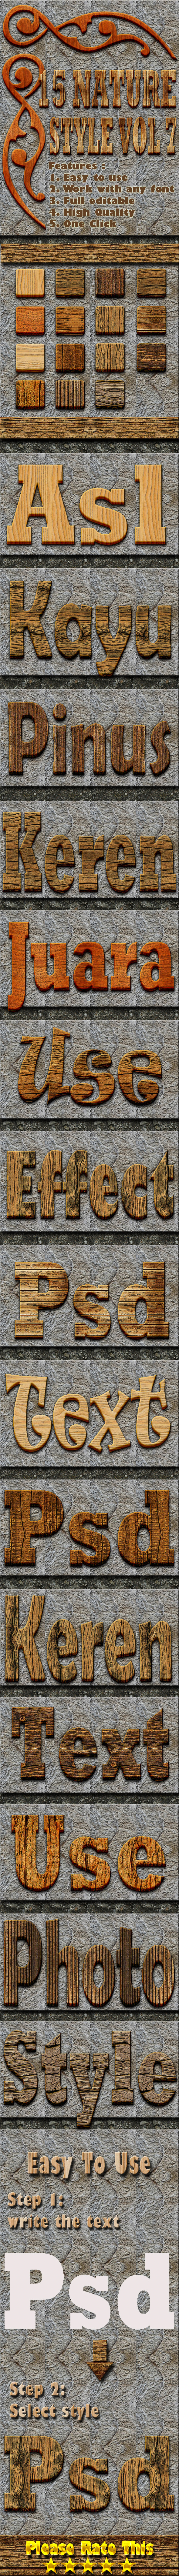 15 Nature Text Effect Style Vol 7 - Styles Photoshop